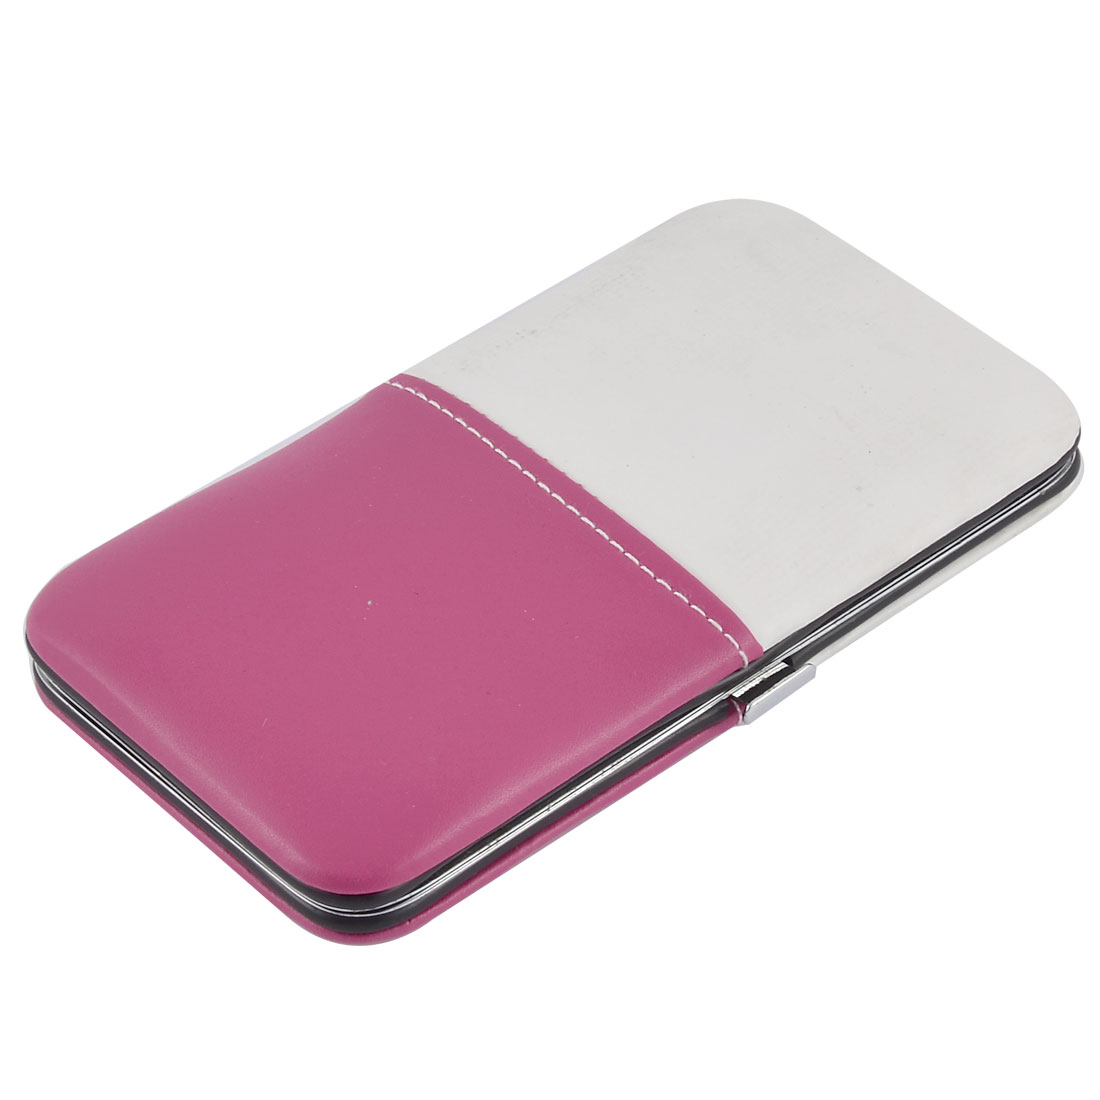 12 in 1 Faux Leather Case Manicure Nail Clipper Cuticle Grooming Set Pink White